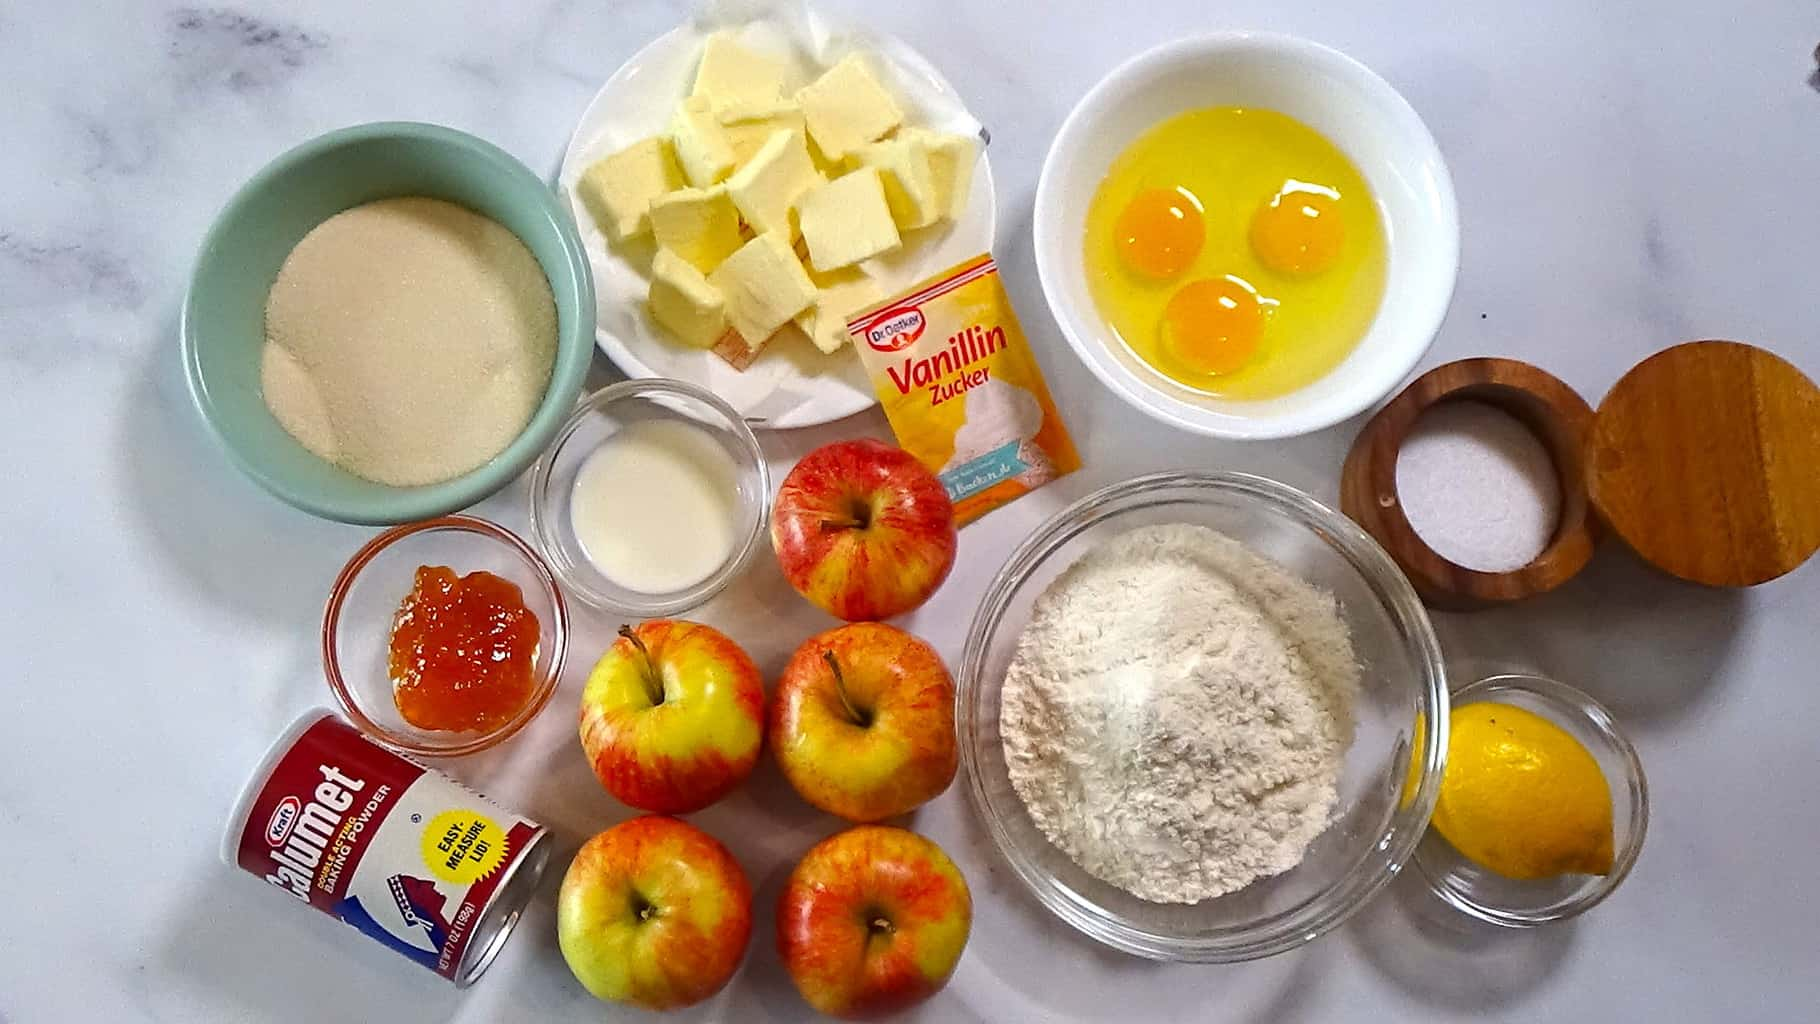 Ingredients needed to make the cake placed together.